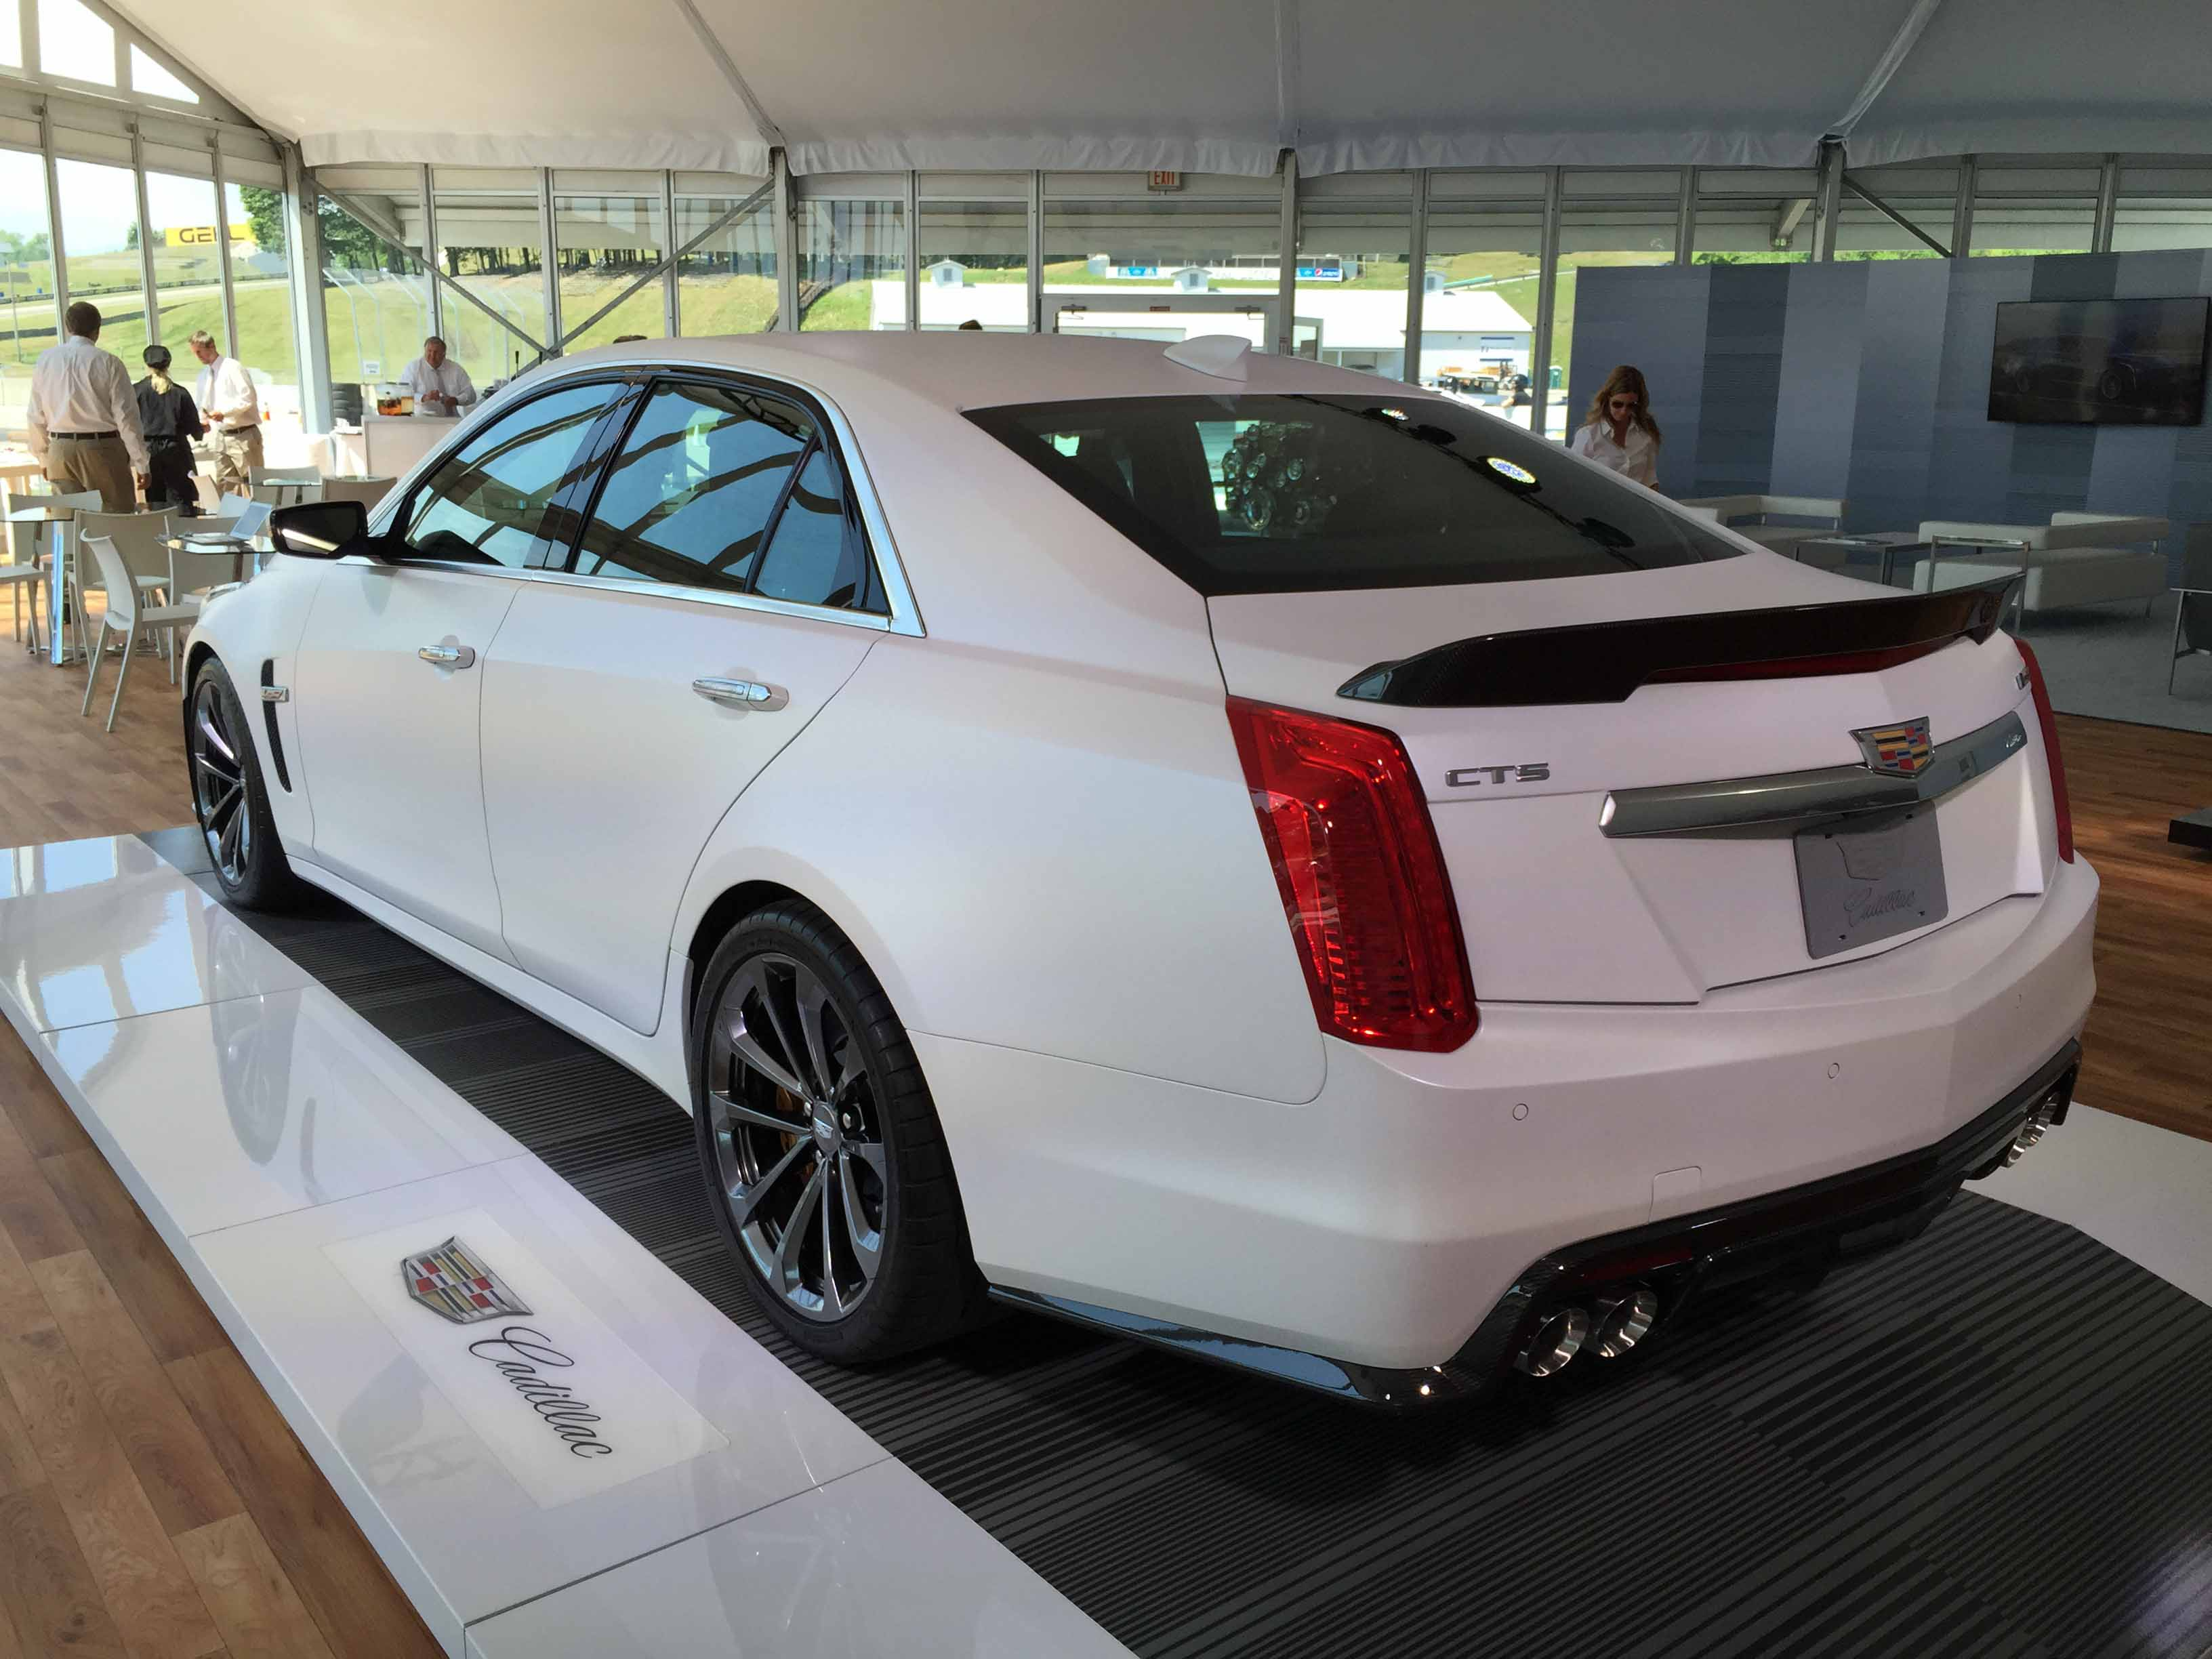 2016 cadillac cts v performance sedan seminal role player automotive rhythms. Black Bedroom Furniture Sets. Home Design Ideas